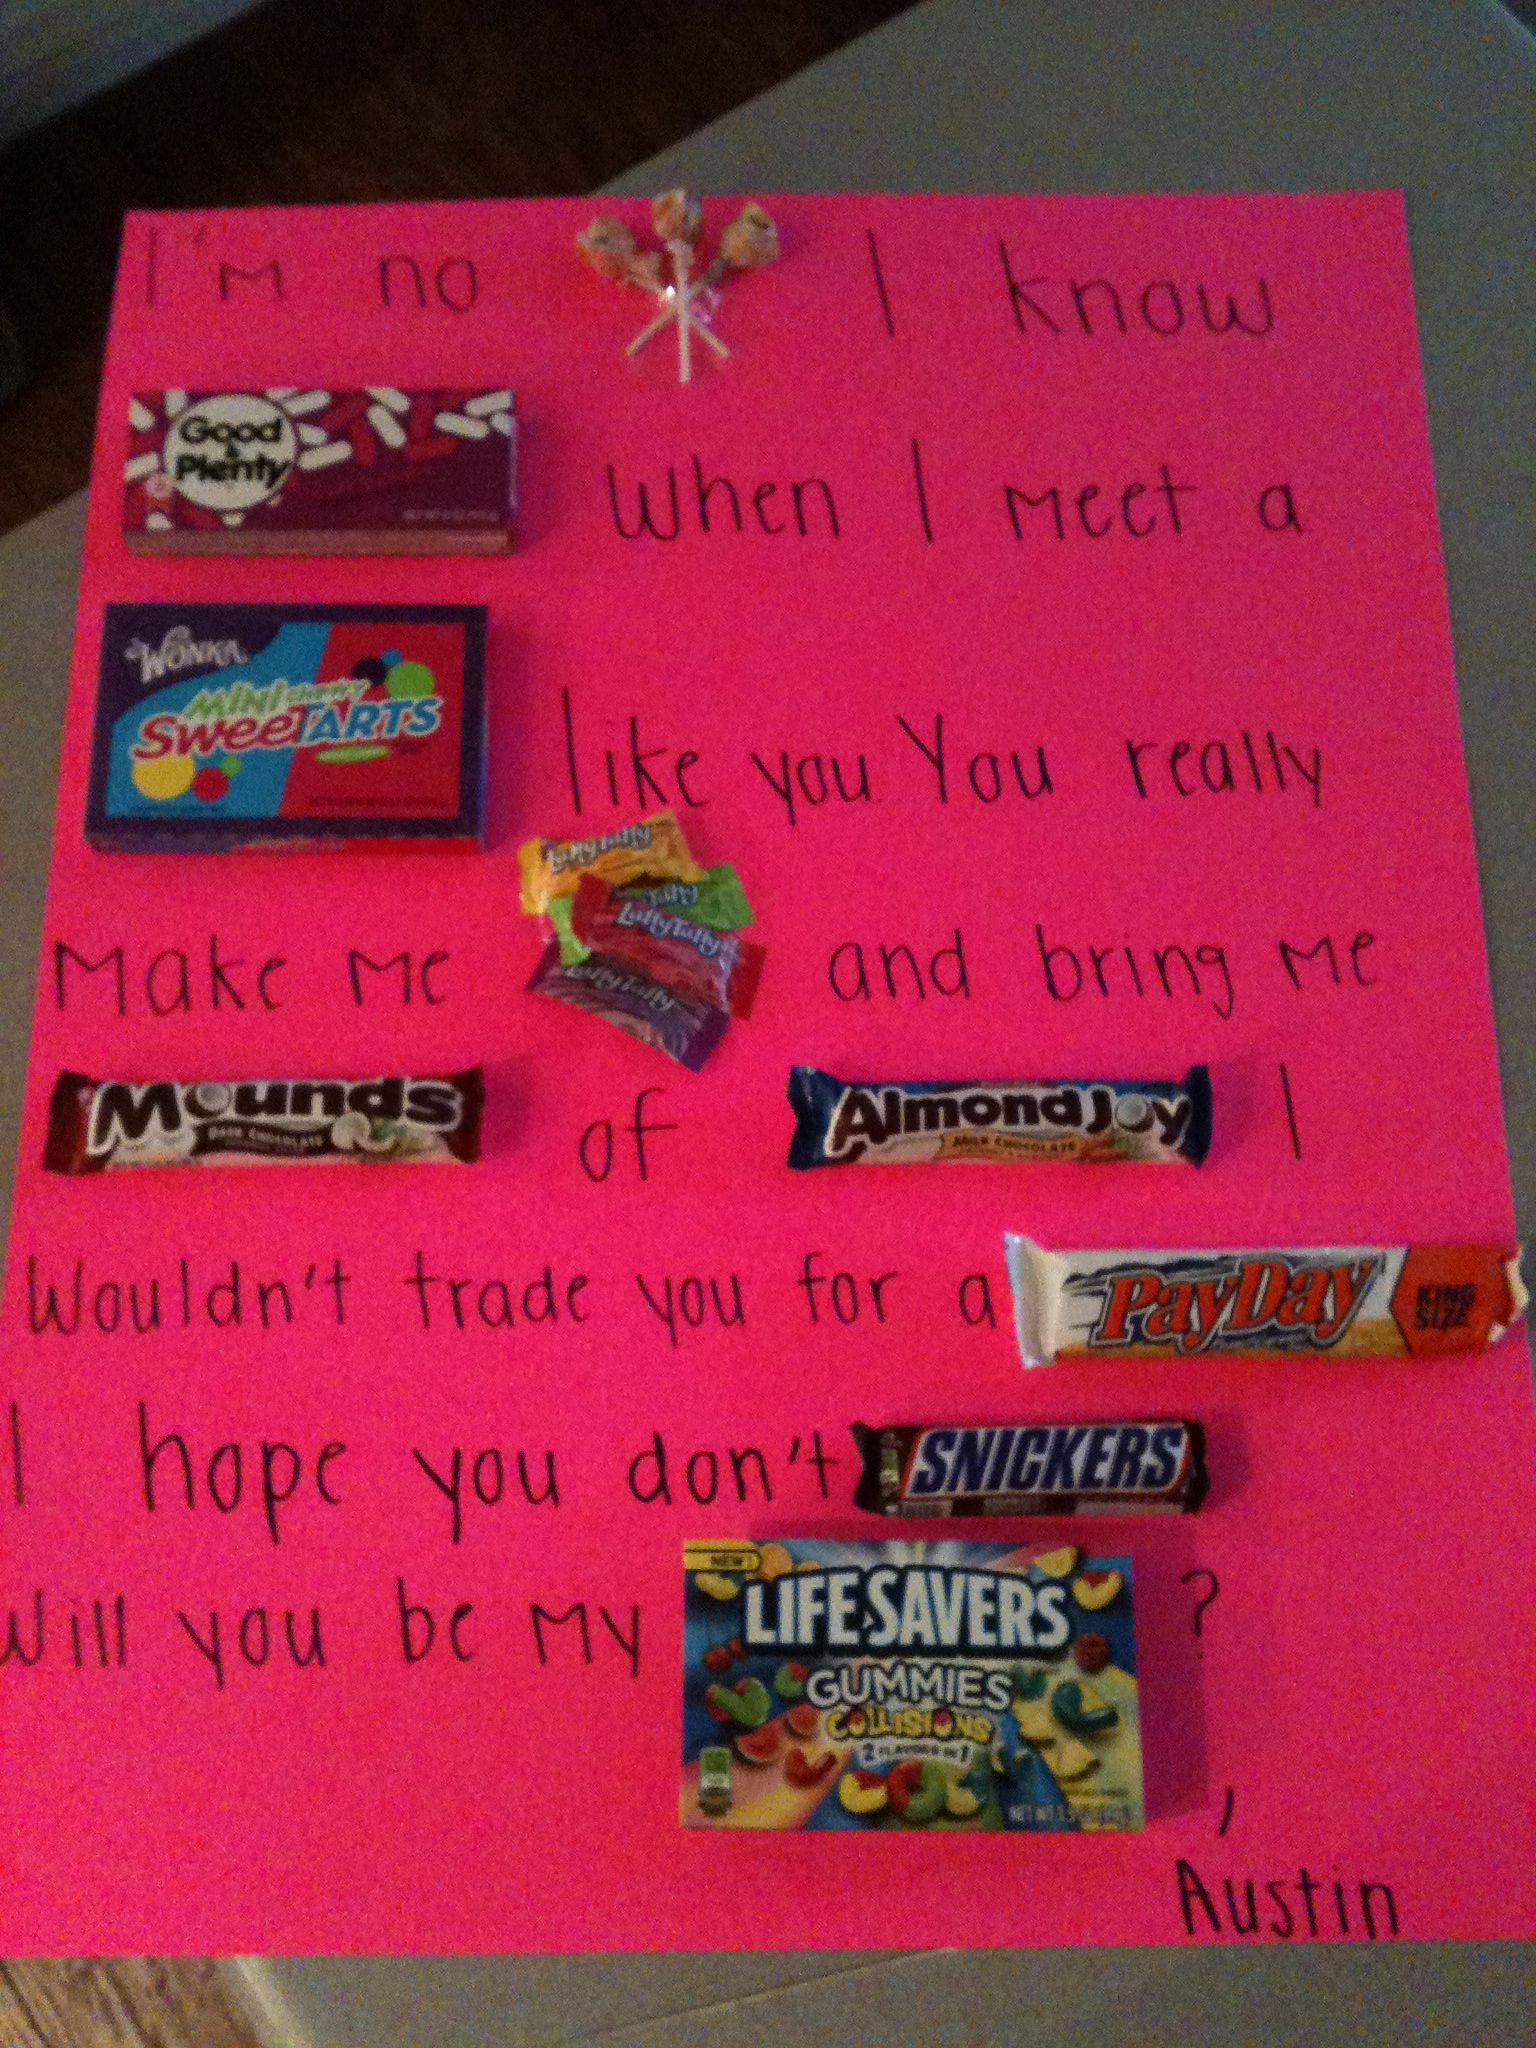 A cute way a guy asked a girl out asking a girl out